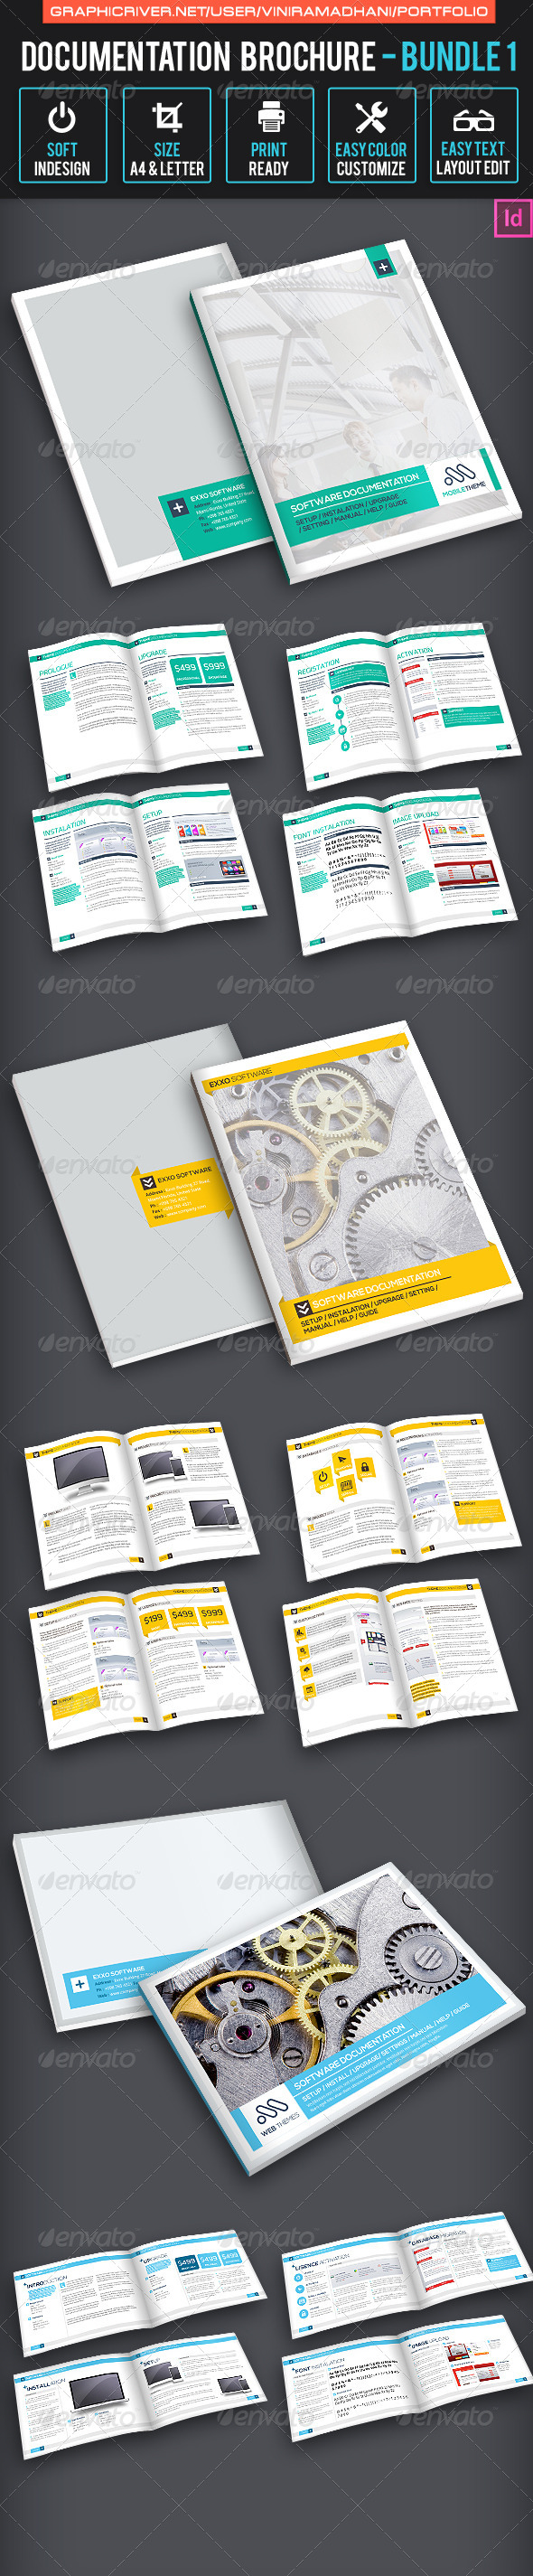 GraphicRiver Documentation Brochure Bundle 1 7325804